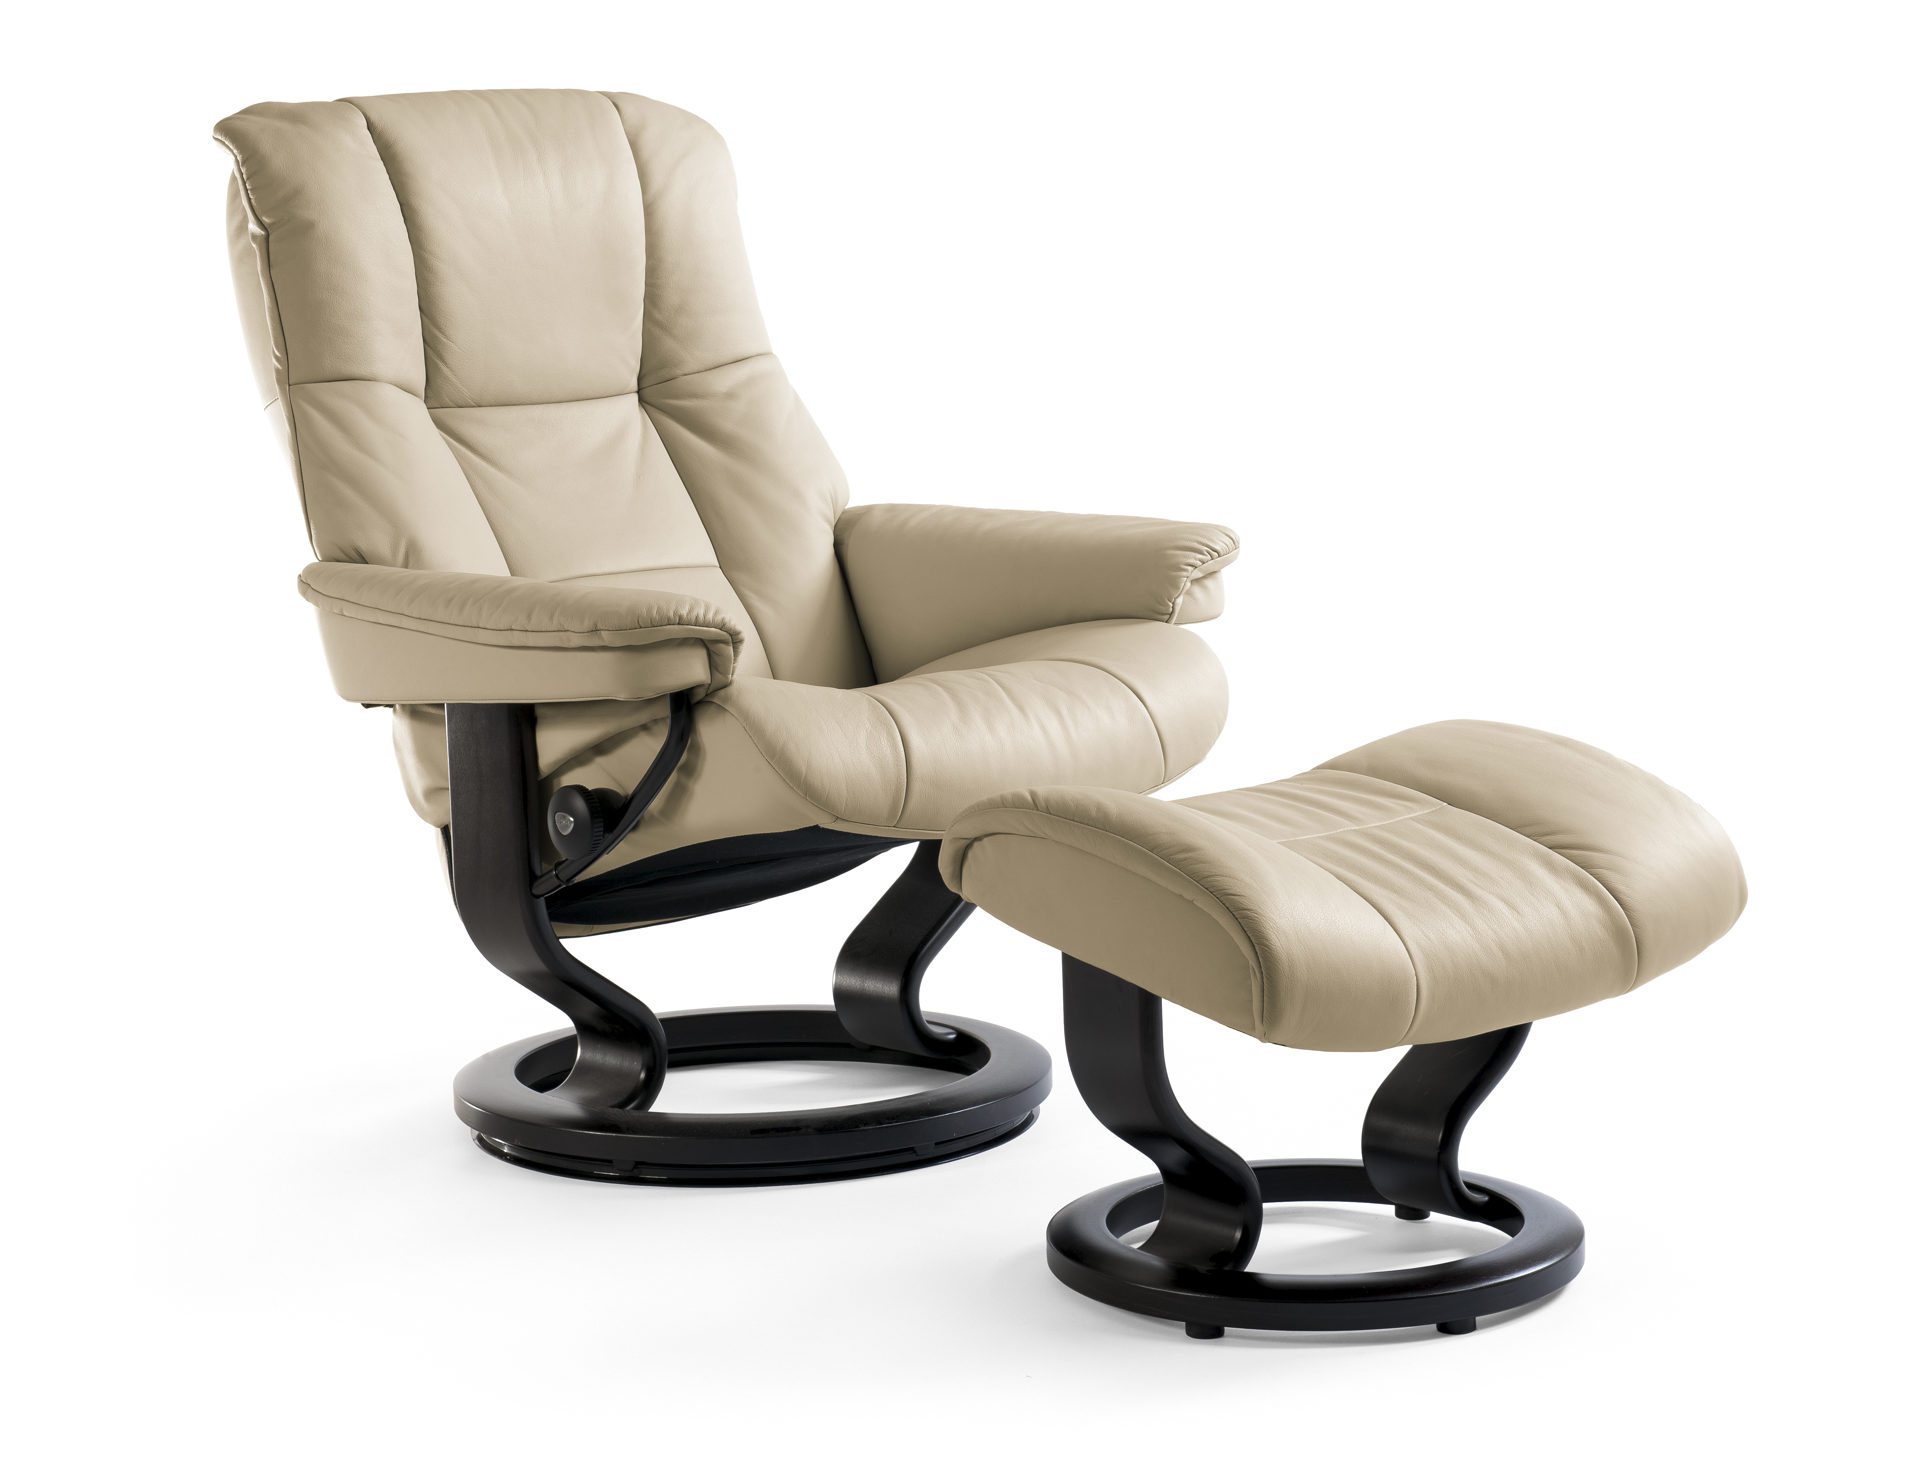 Stressless Ekornes Sessel Stressless Mayfair Relaxsessel Mit Hocker Noblesse Sand Black